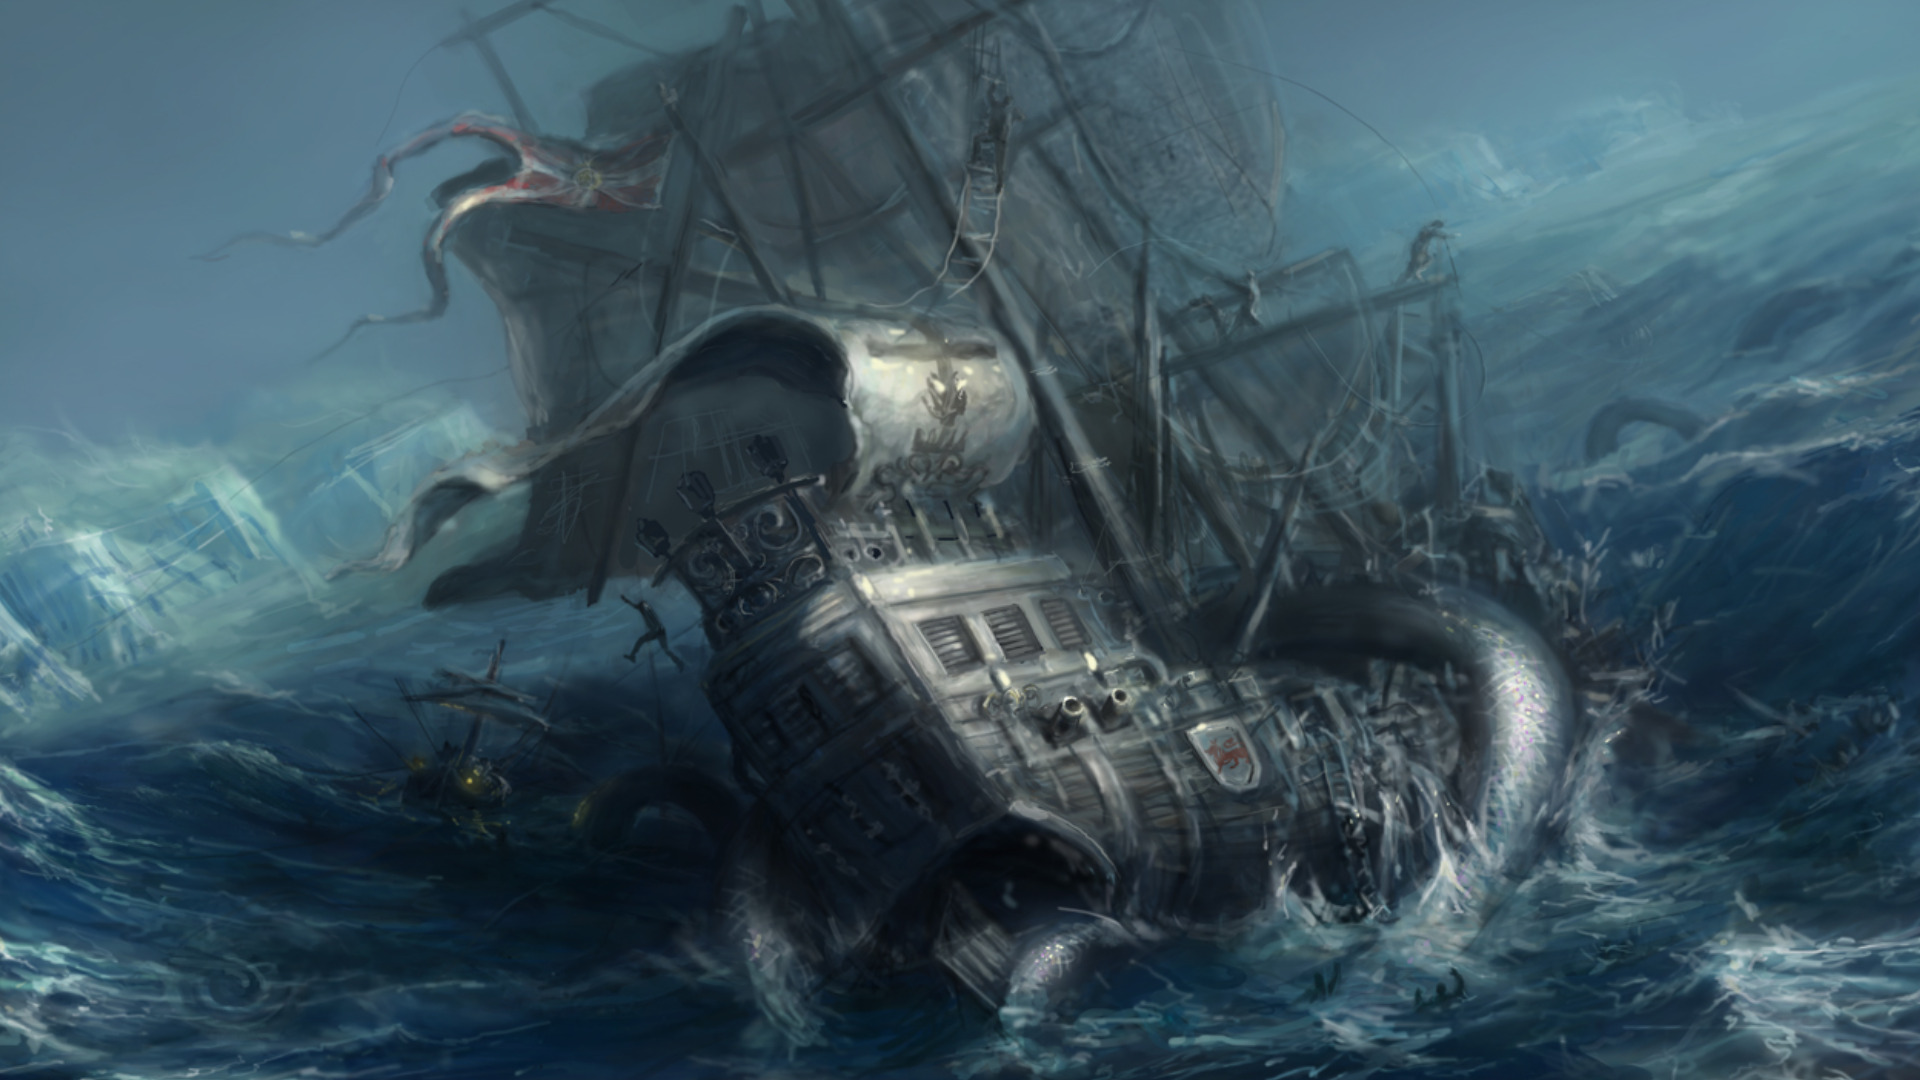 Pirate Ship and Sea Monster